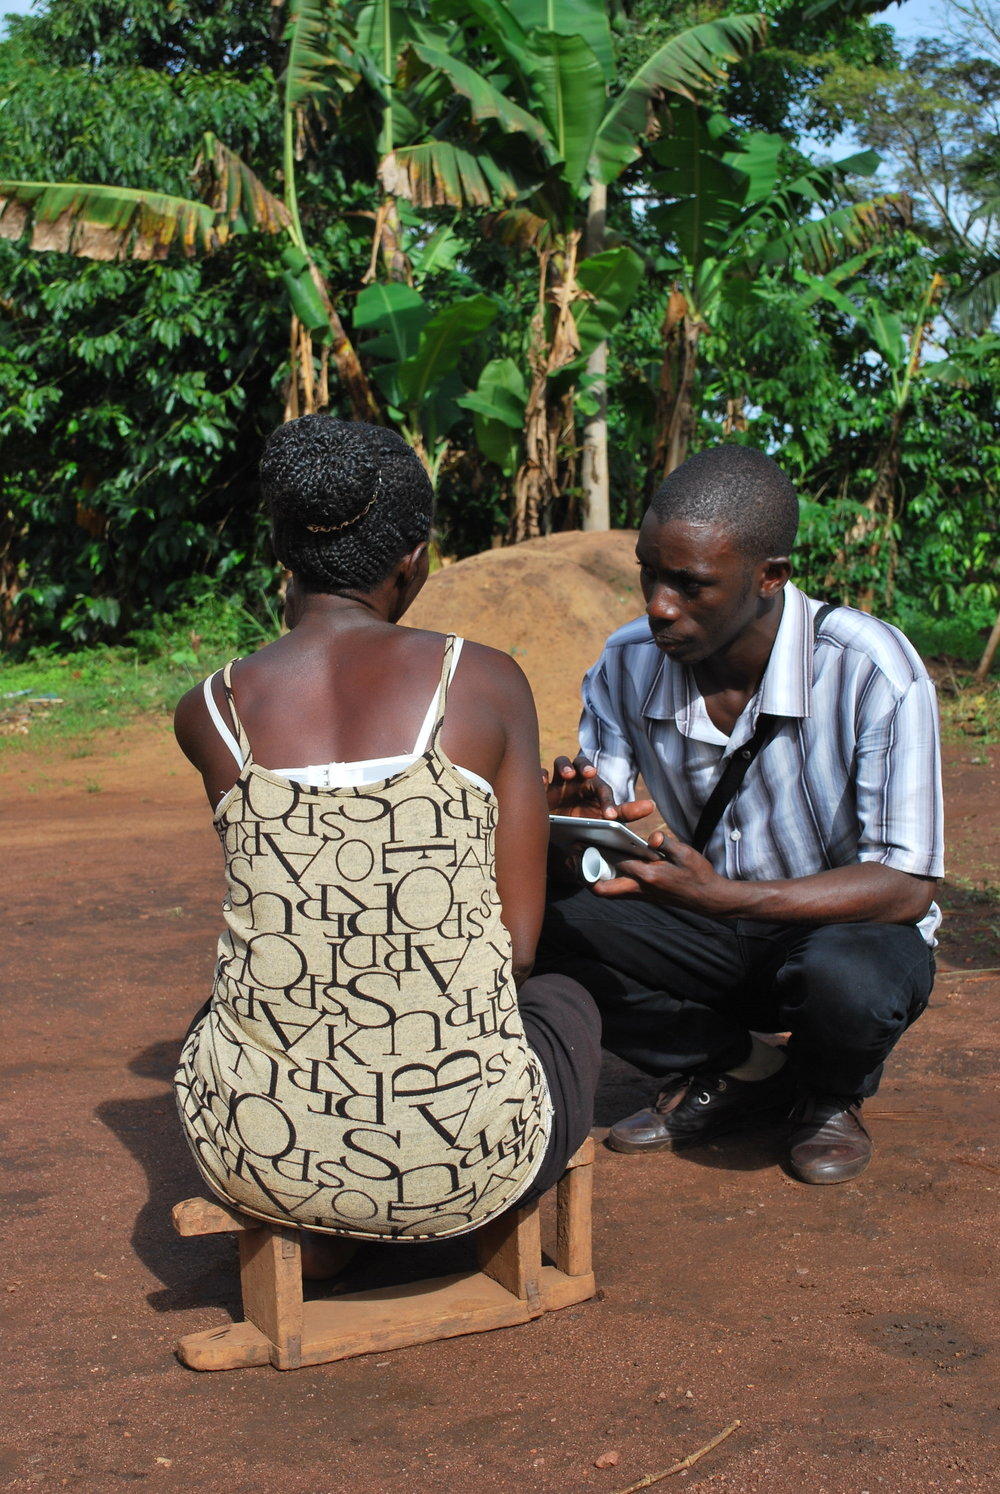 Field worker Denis interviews a study participant in Nakaseke.